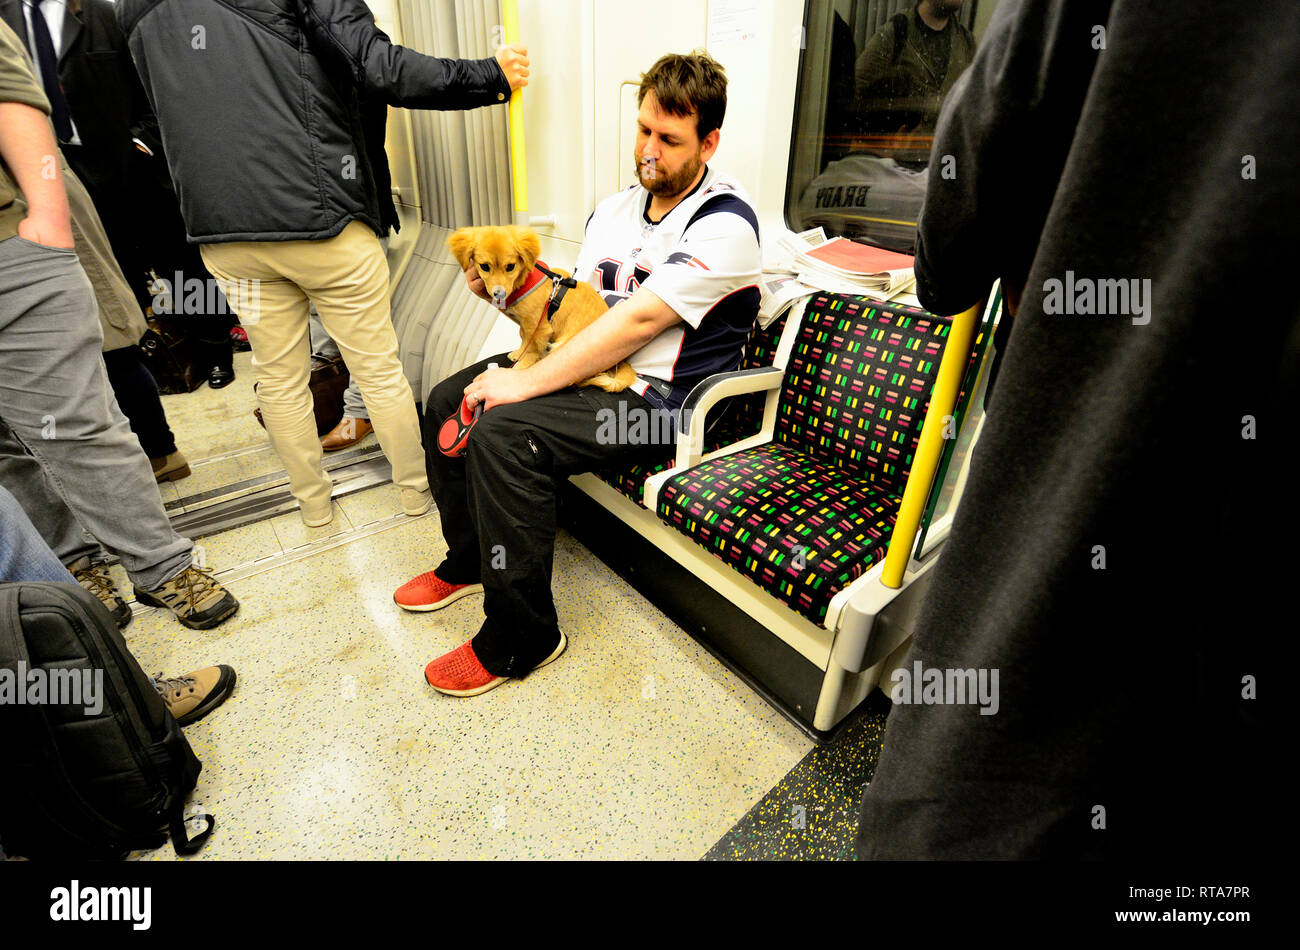 London, England, UK. Man with a small dog on a tube train, London Underground - Stock Image